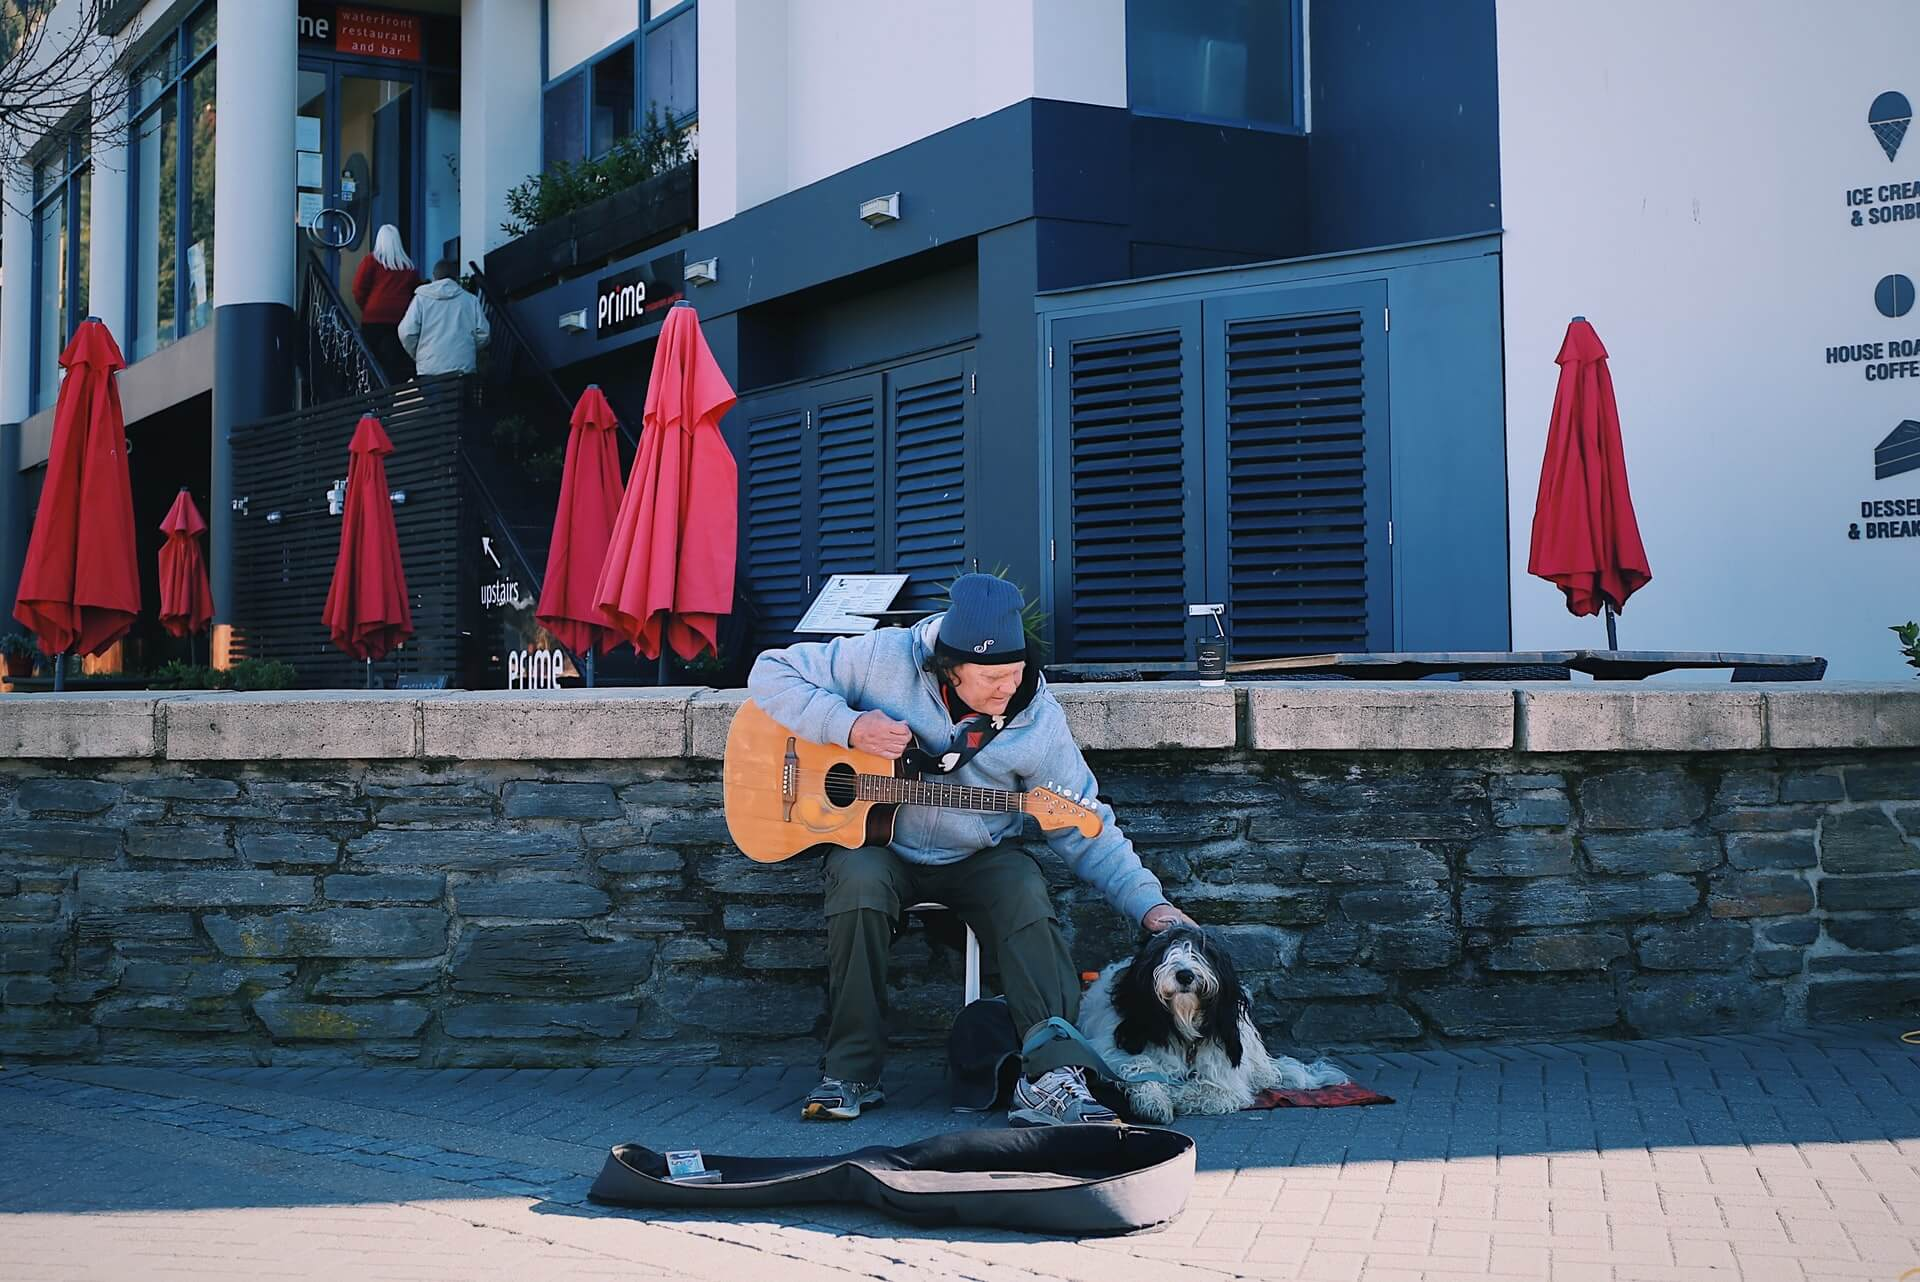 A busker at the Queenstown lakefront market pats his dog